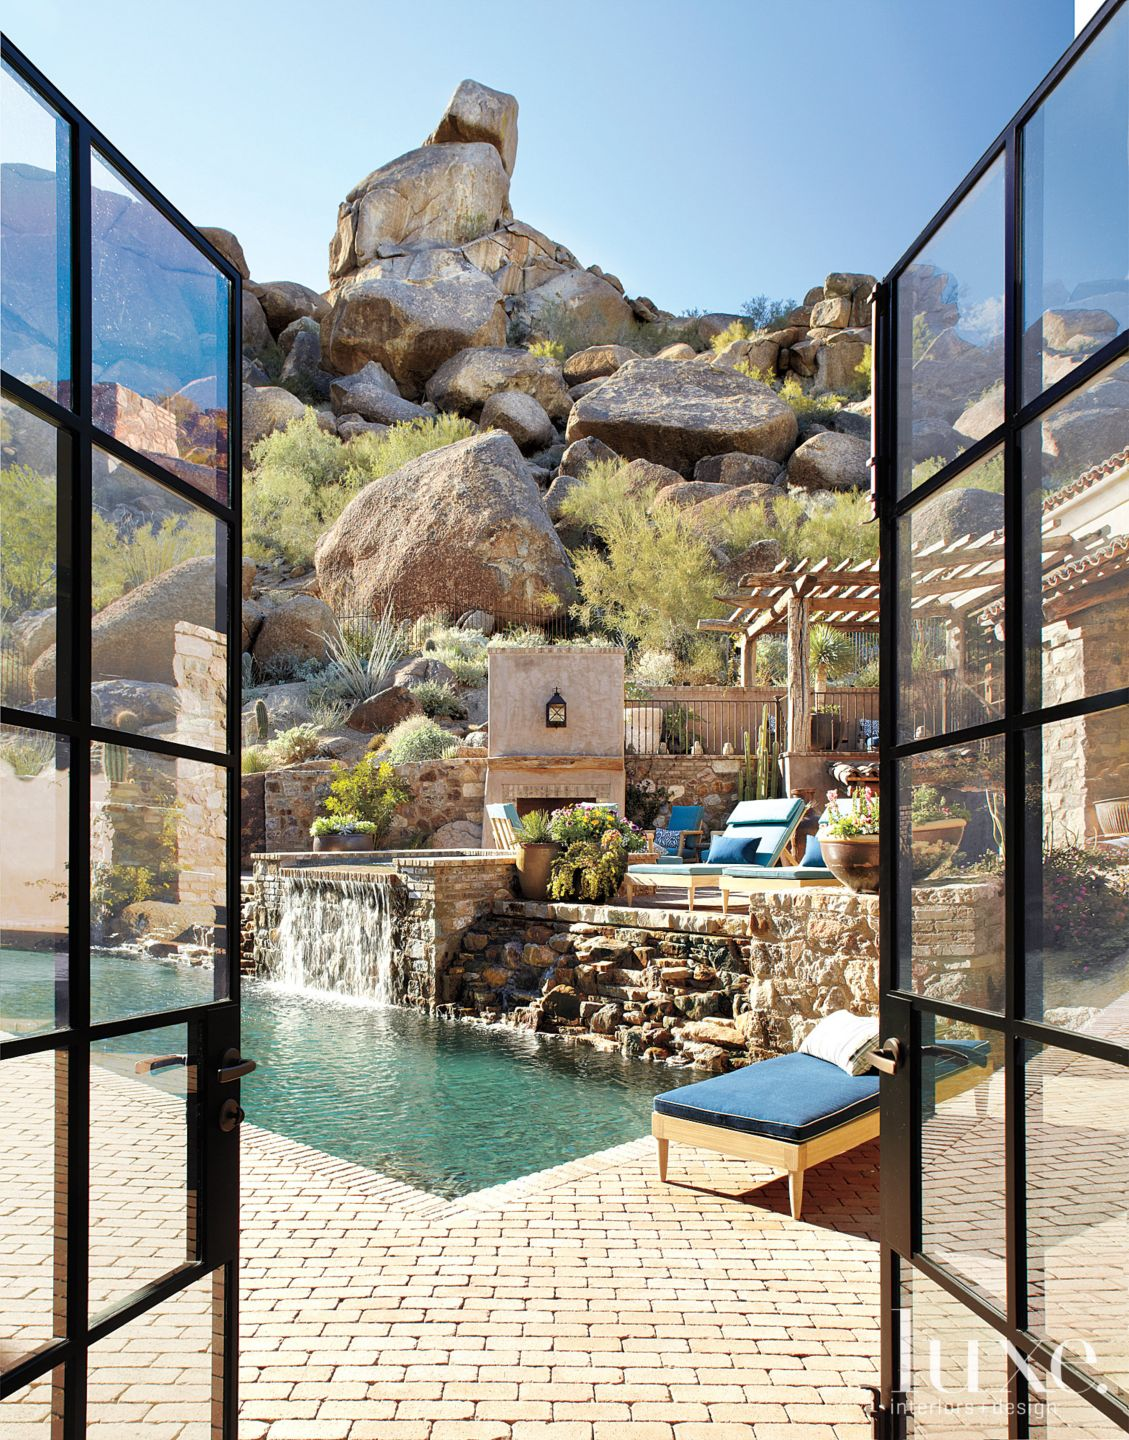 Brick and Stone Mountain Patio with Pool